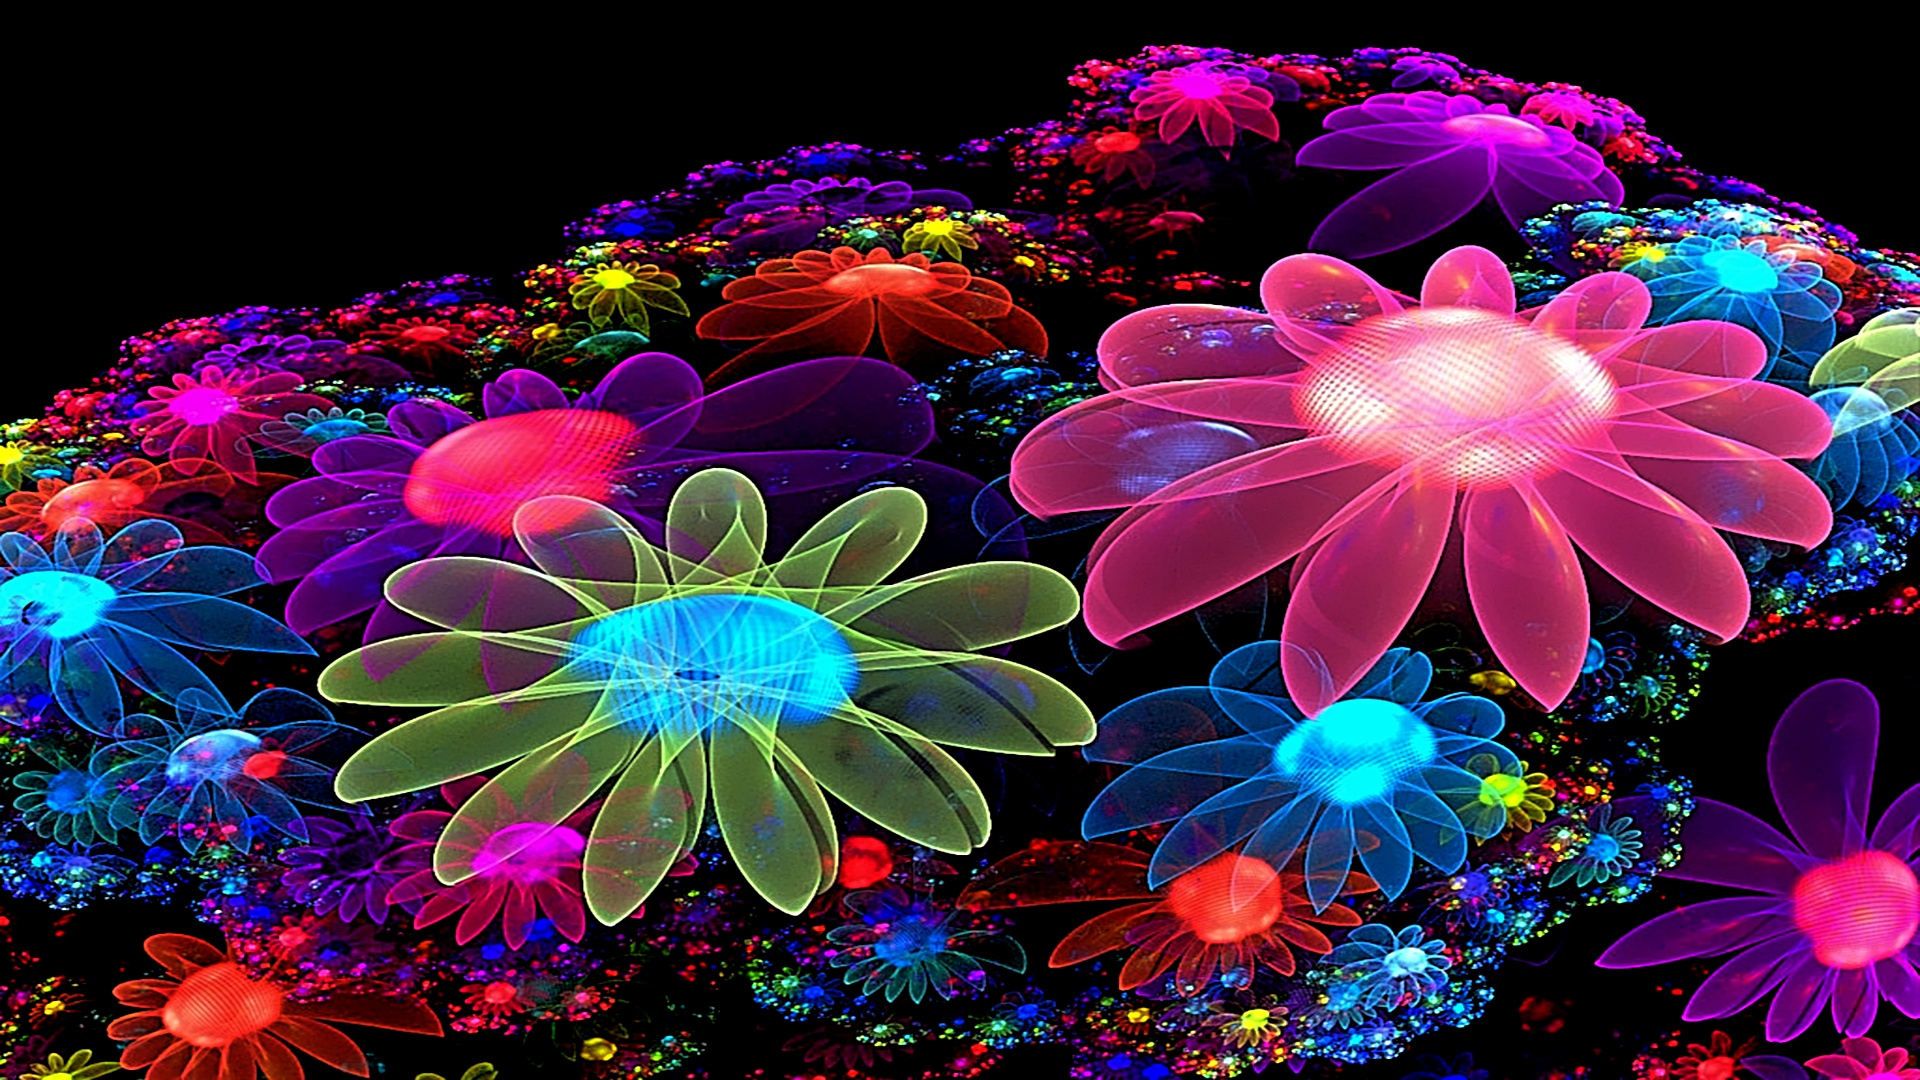 Cool Colorful Flowers Desktop Wallpapers Free Images #8221 | HD ...